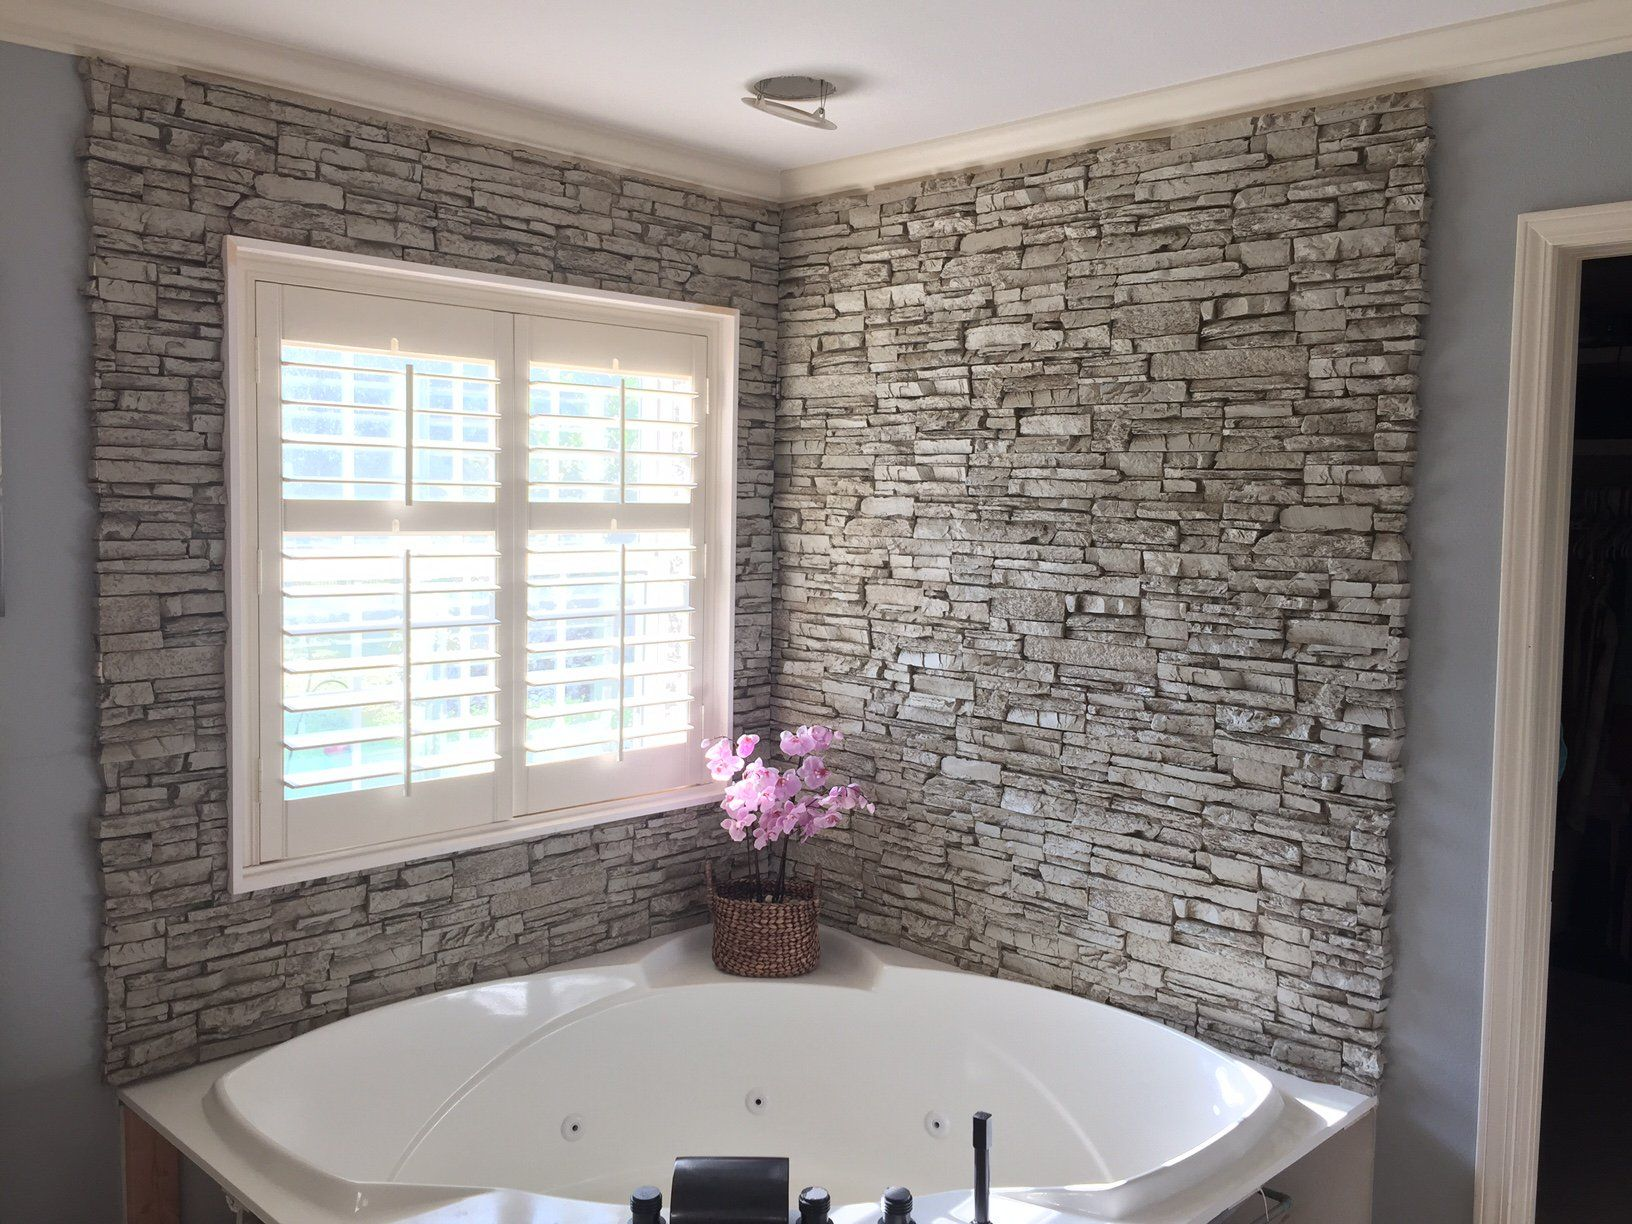 best 25 bathtub redo ideas only on pinterest paneling remodel see the bathtub wall surround created with the look of real stacked stone that turned a luxury corner bath into a stunning showpiece